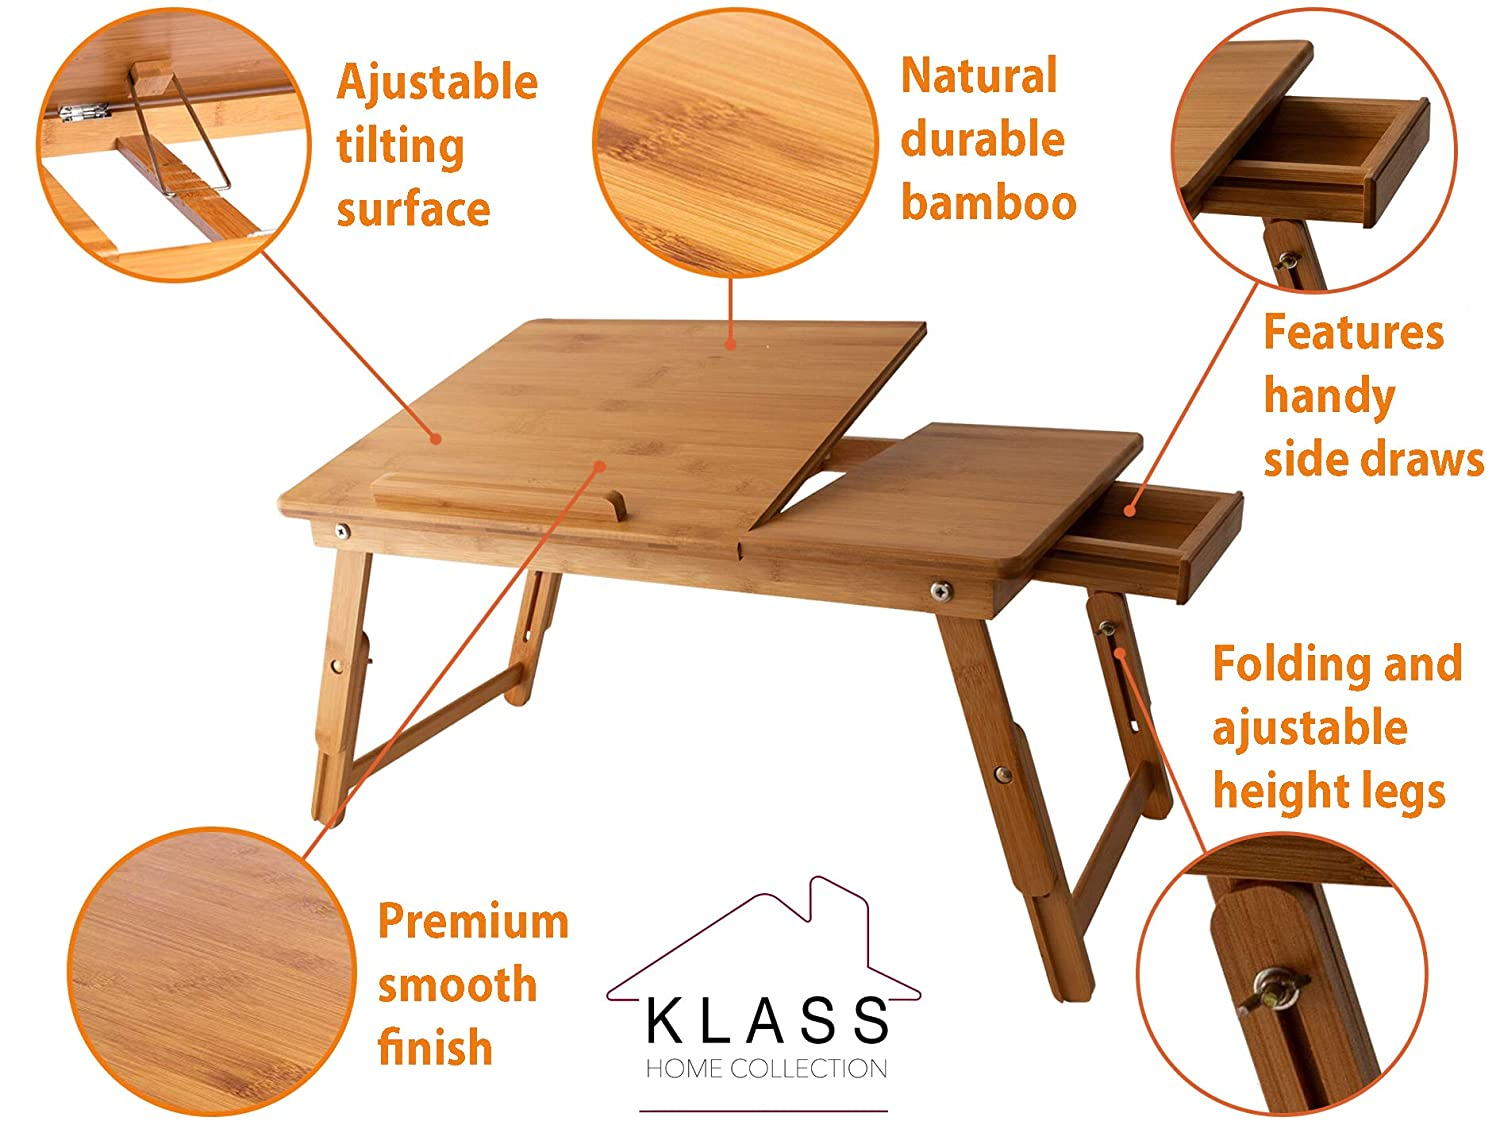 55 x 35 x 23,5 x 35 cm Klass Home Collection/® Laptop-Tablett aus Bambus Holz